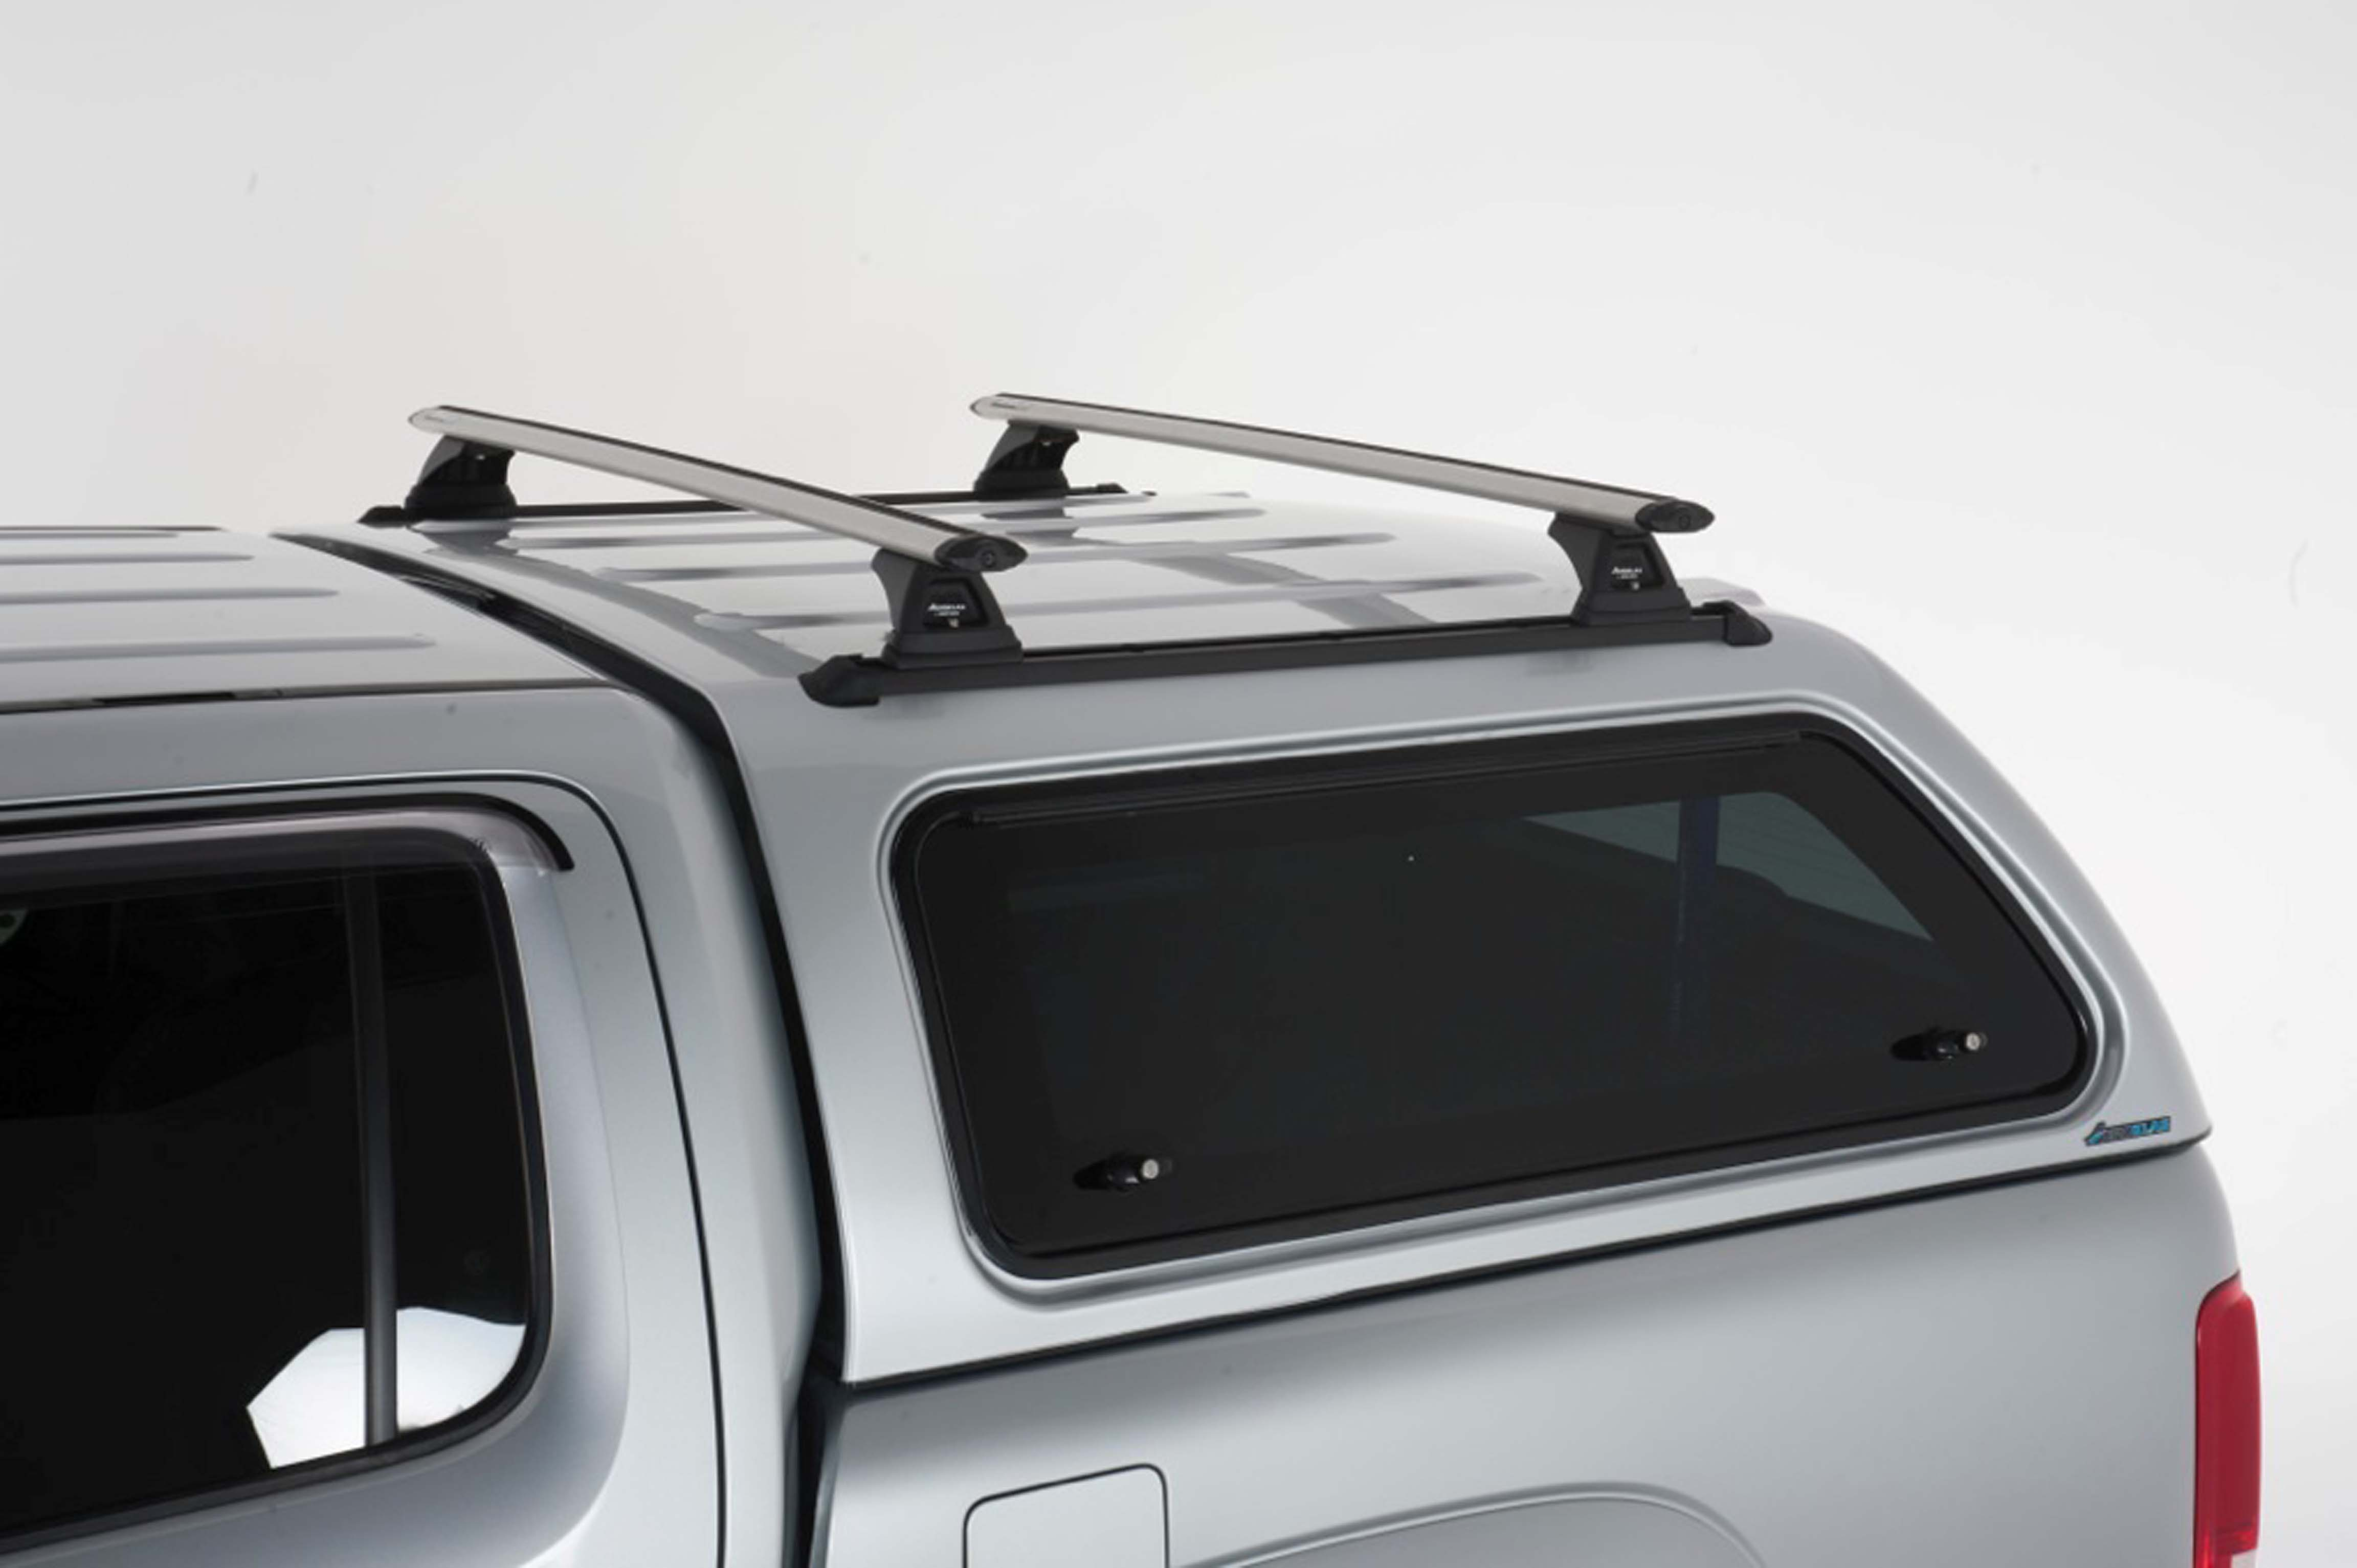 Canopy Roof Rack & BRAND NEW KIA/HYUNDAI H100 LOW CANOPY